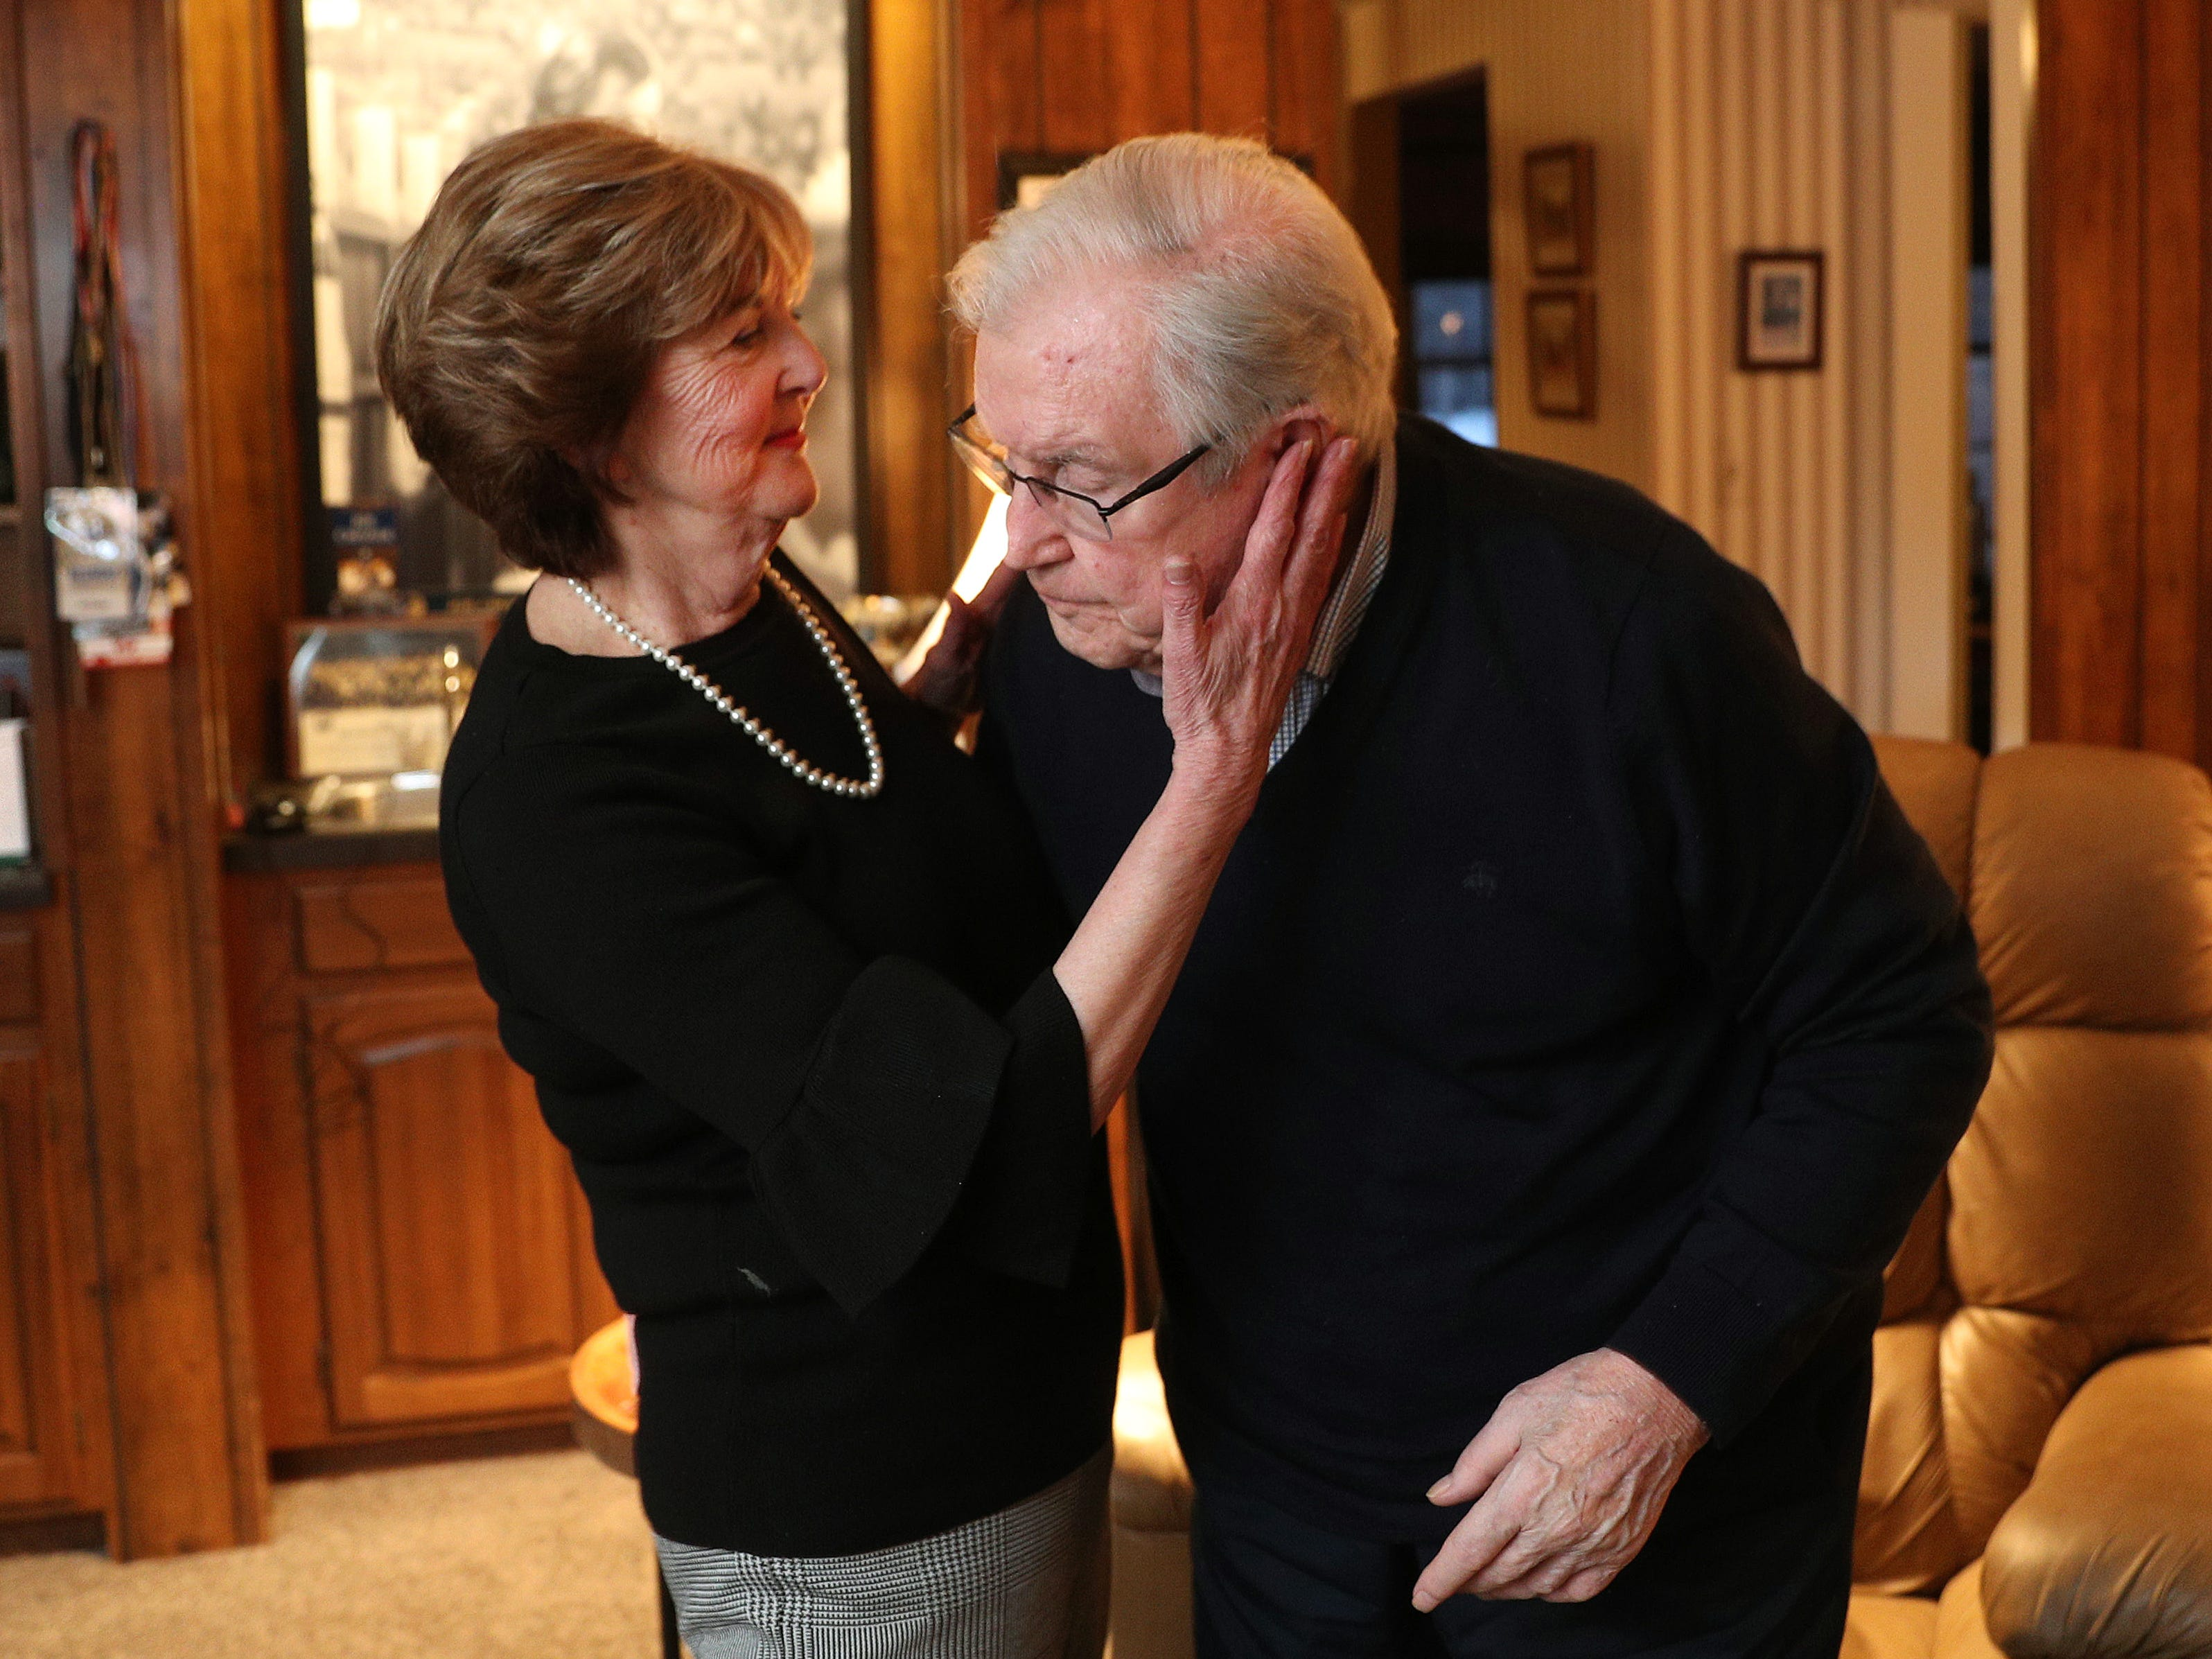 Bonnie Crozier comforts her husband, Joe, in their Amherst home.  The couple married in 1974. Joe Crozier turns 90 on Feb. 19, 2019, and is suffering from accelerating dementia.